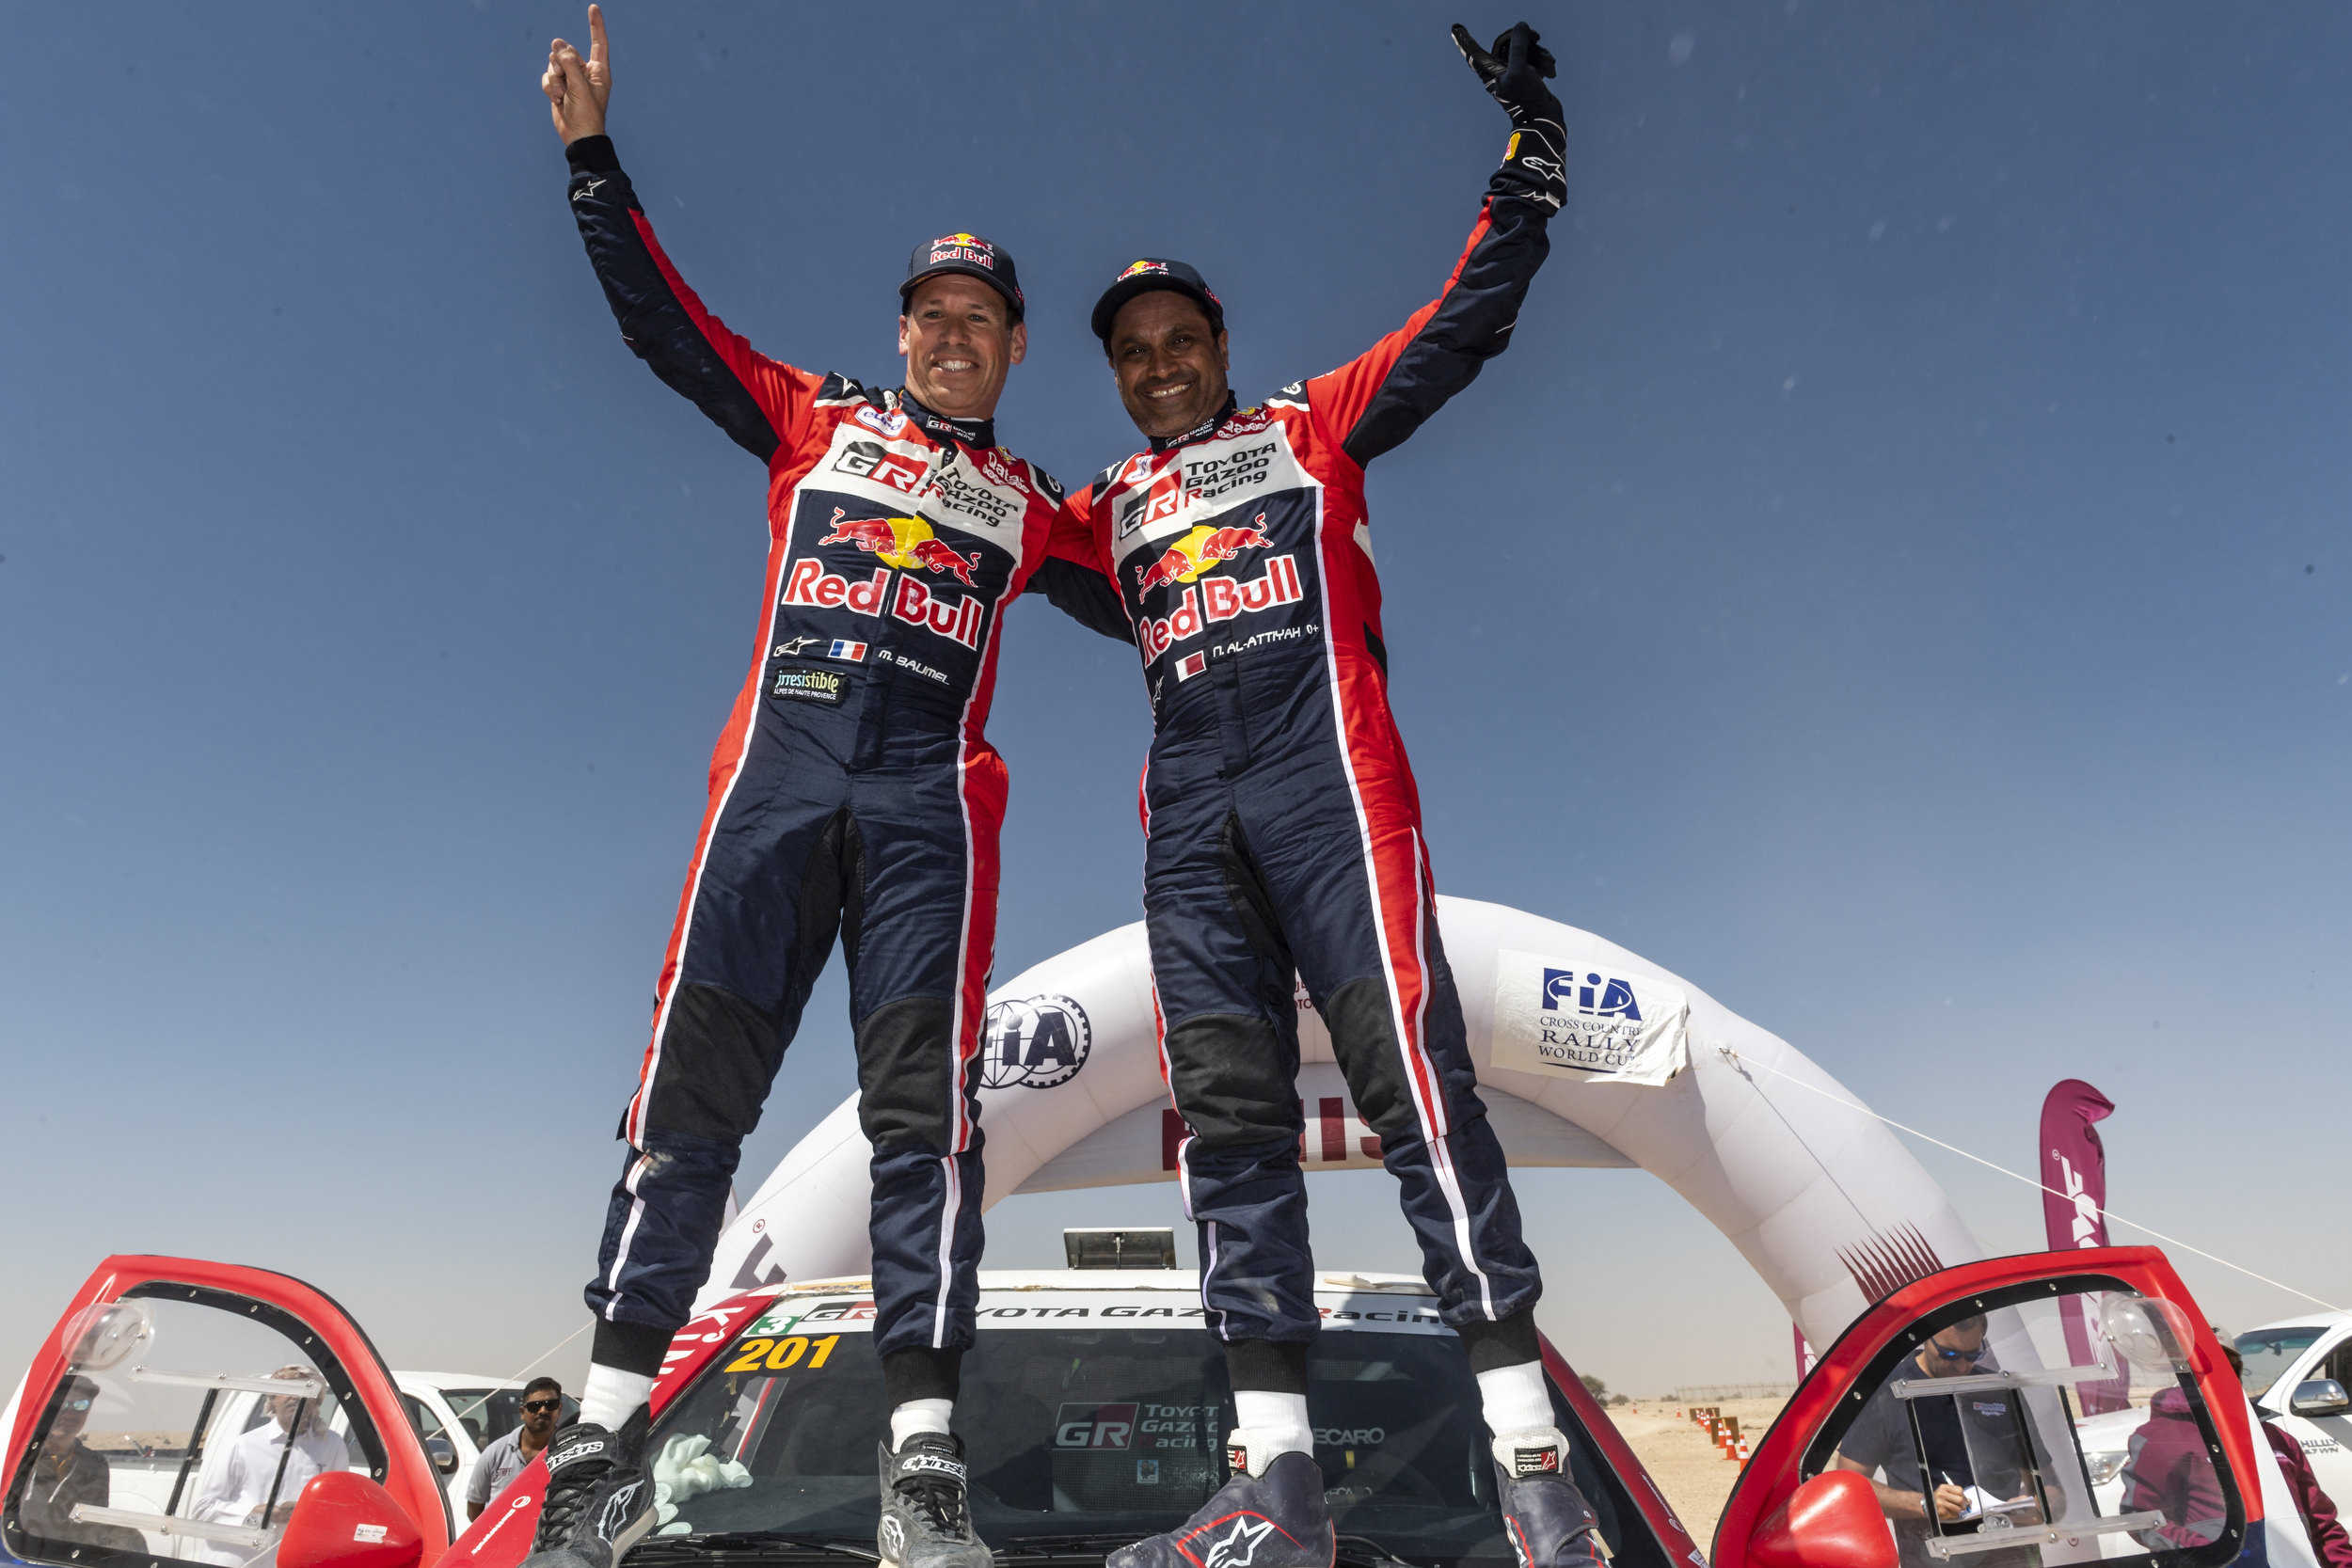 Victory for Nasser and Matthieu